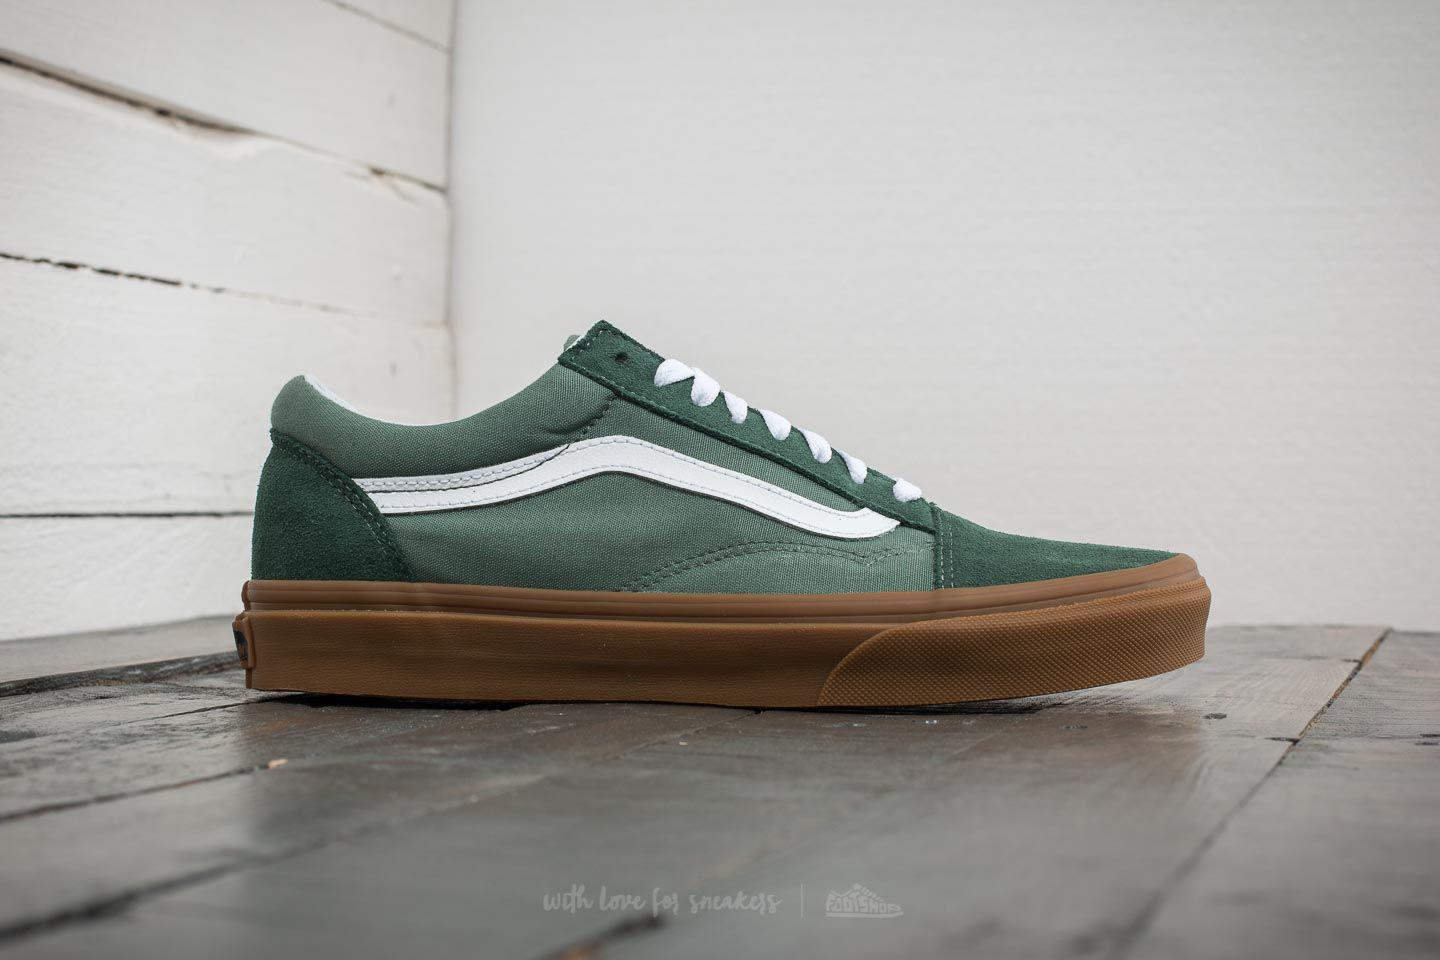 cff47b907b4 Lyst - Vans Old Skool Duck Green  Gum in Green for Men